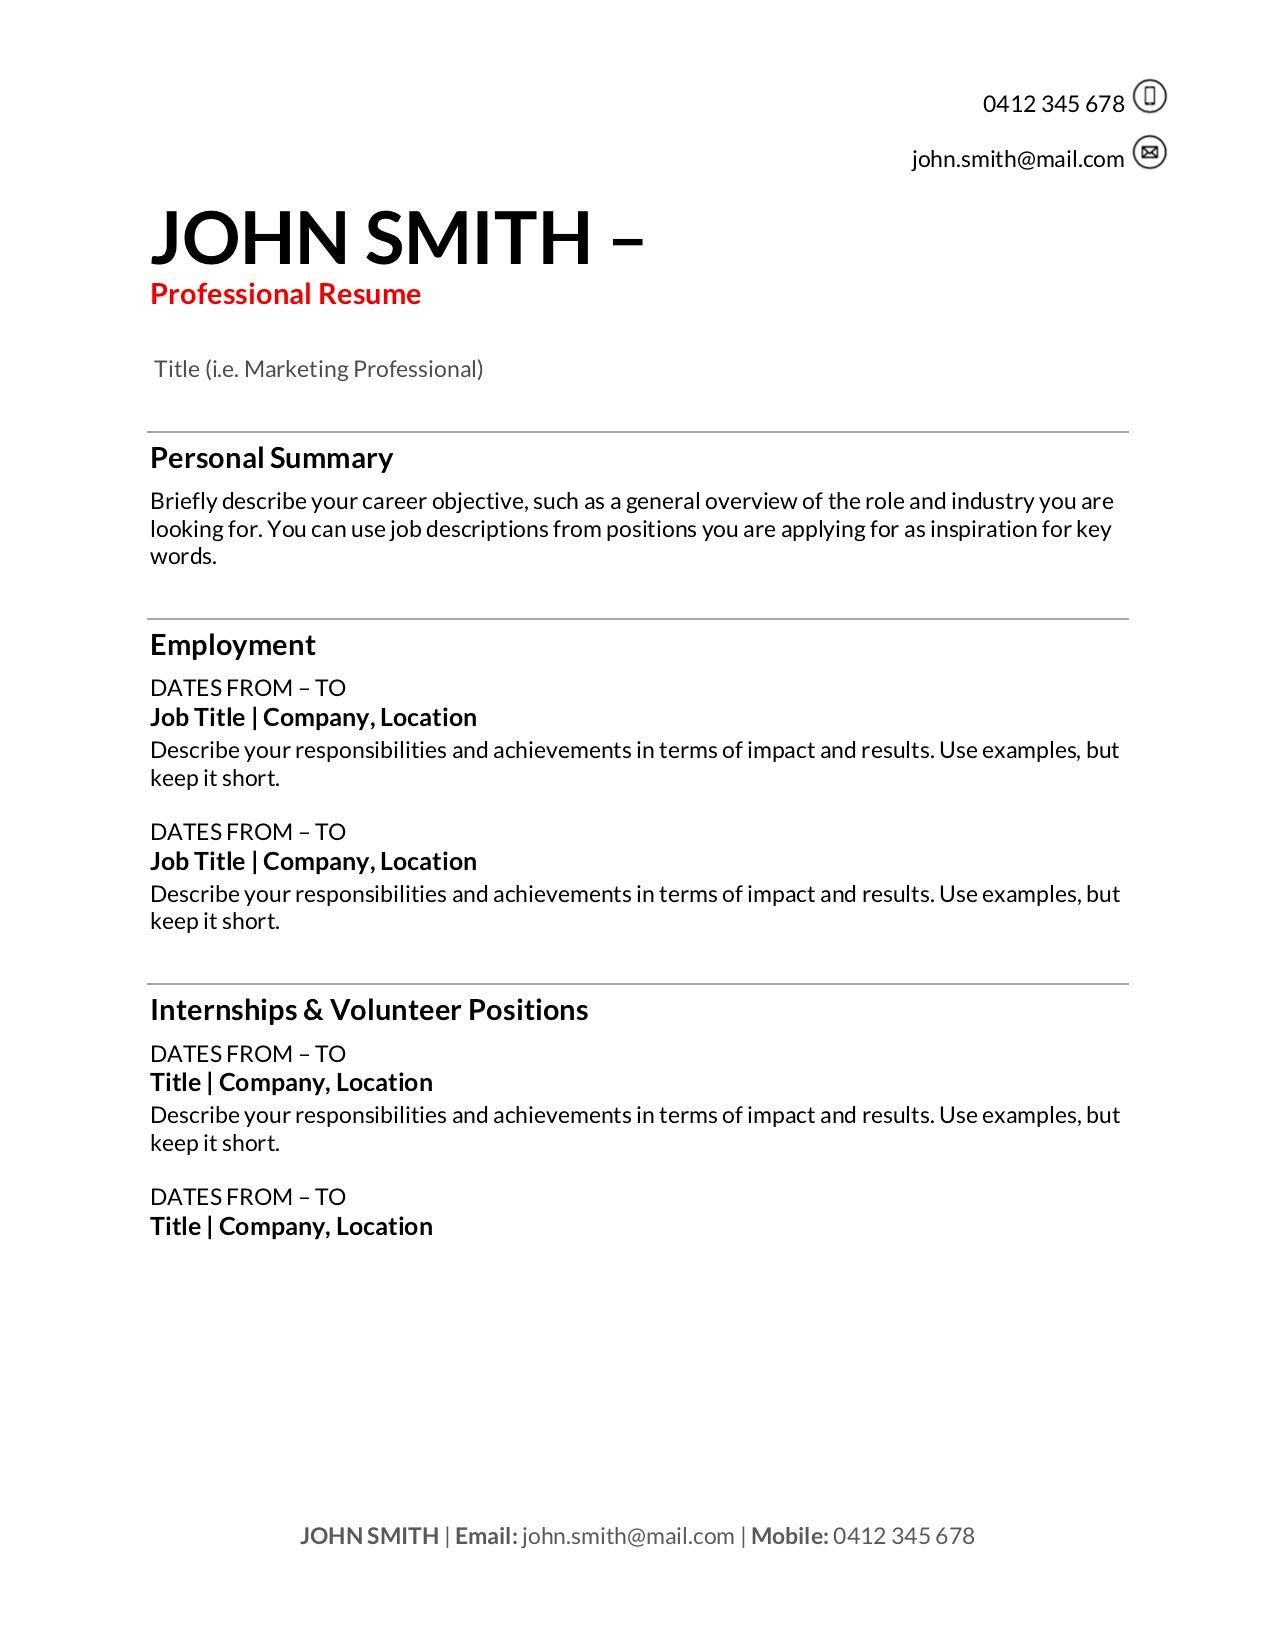 free resume templates to write in training au first job layout construction Resume First Job Resume Layout